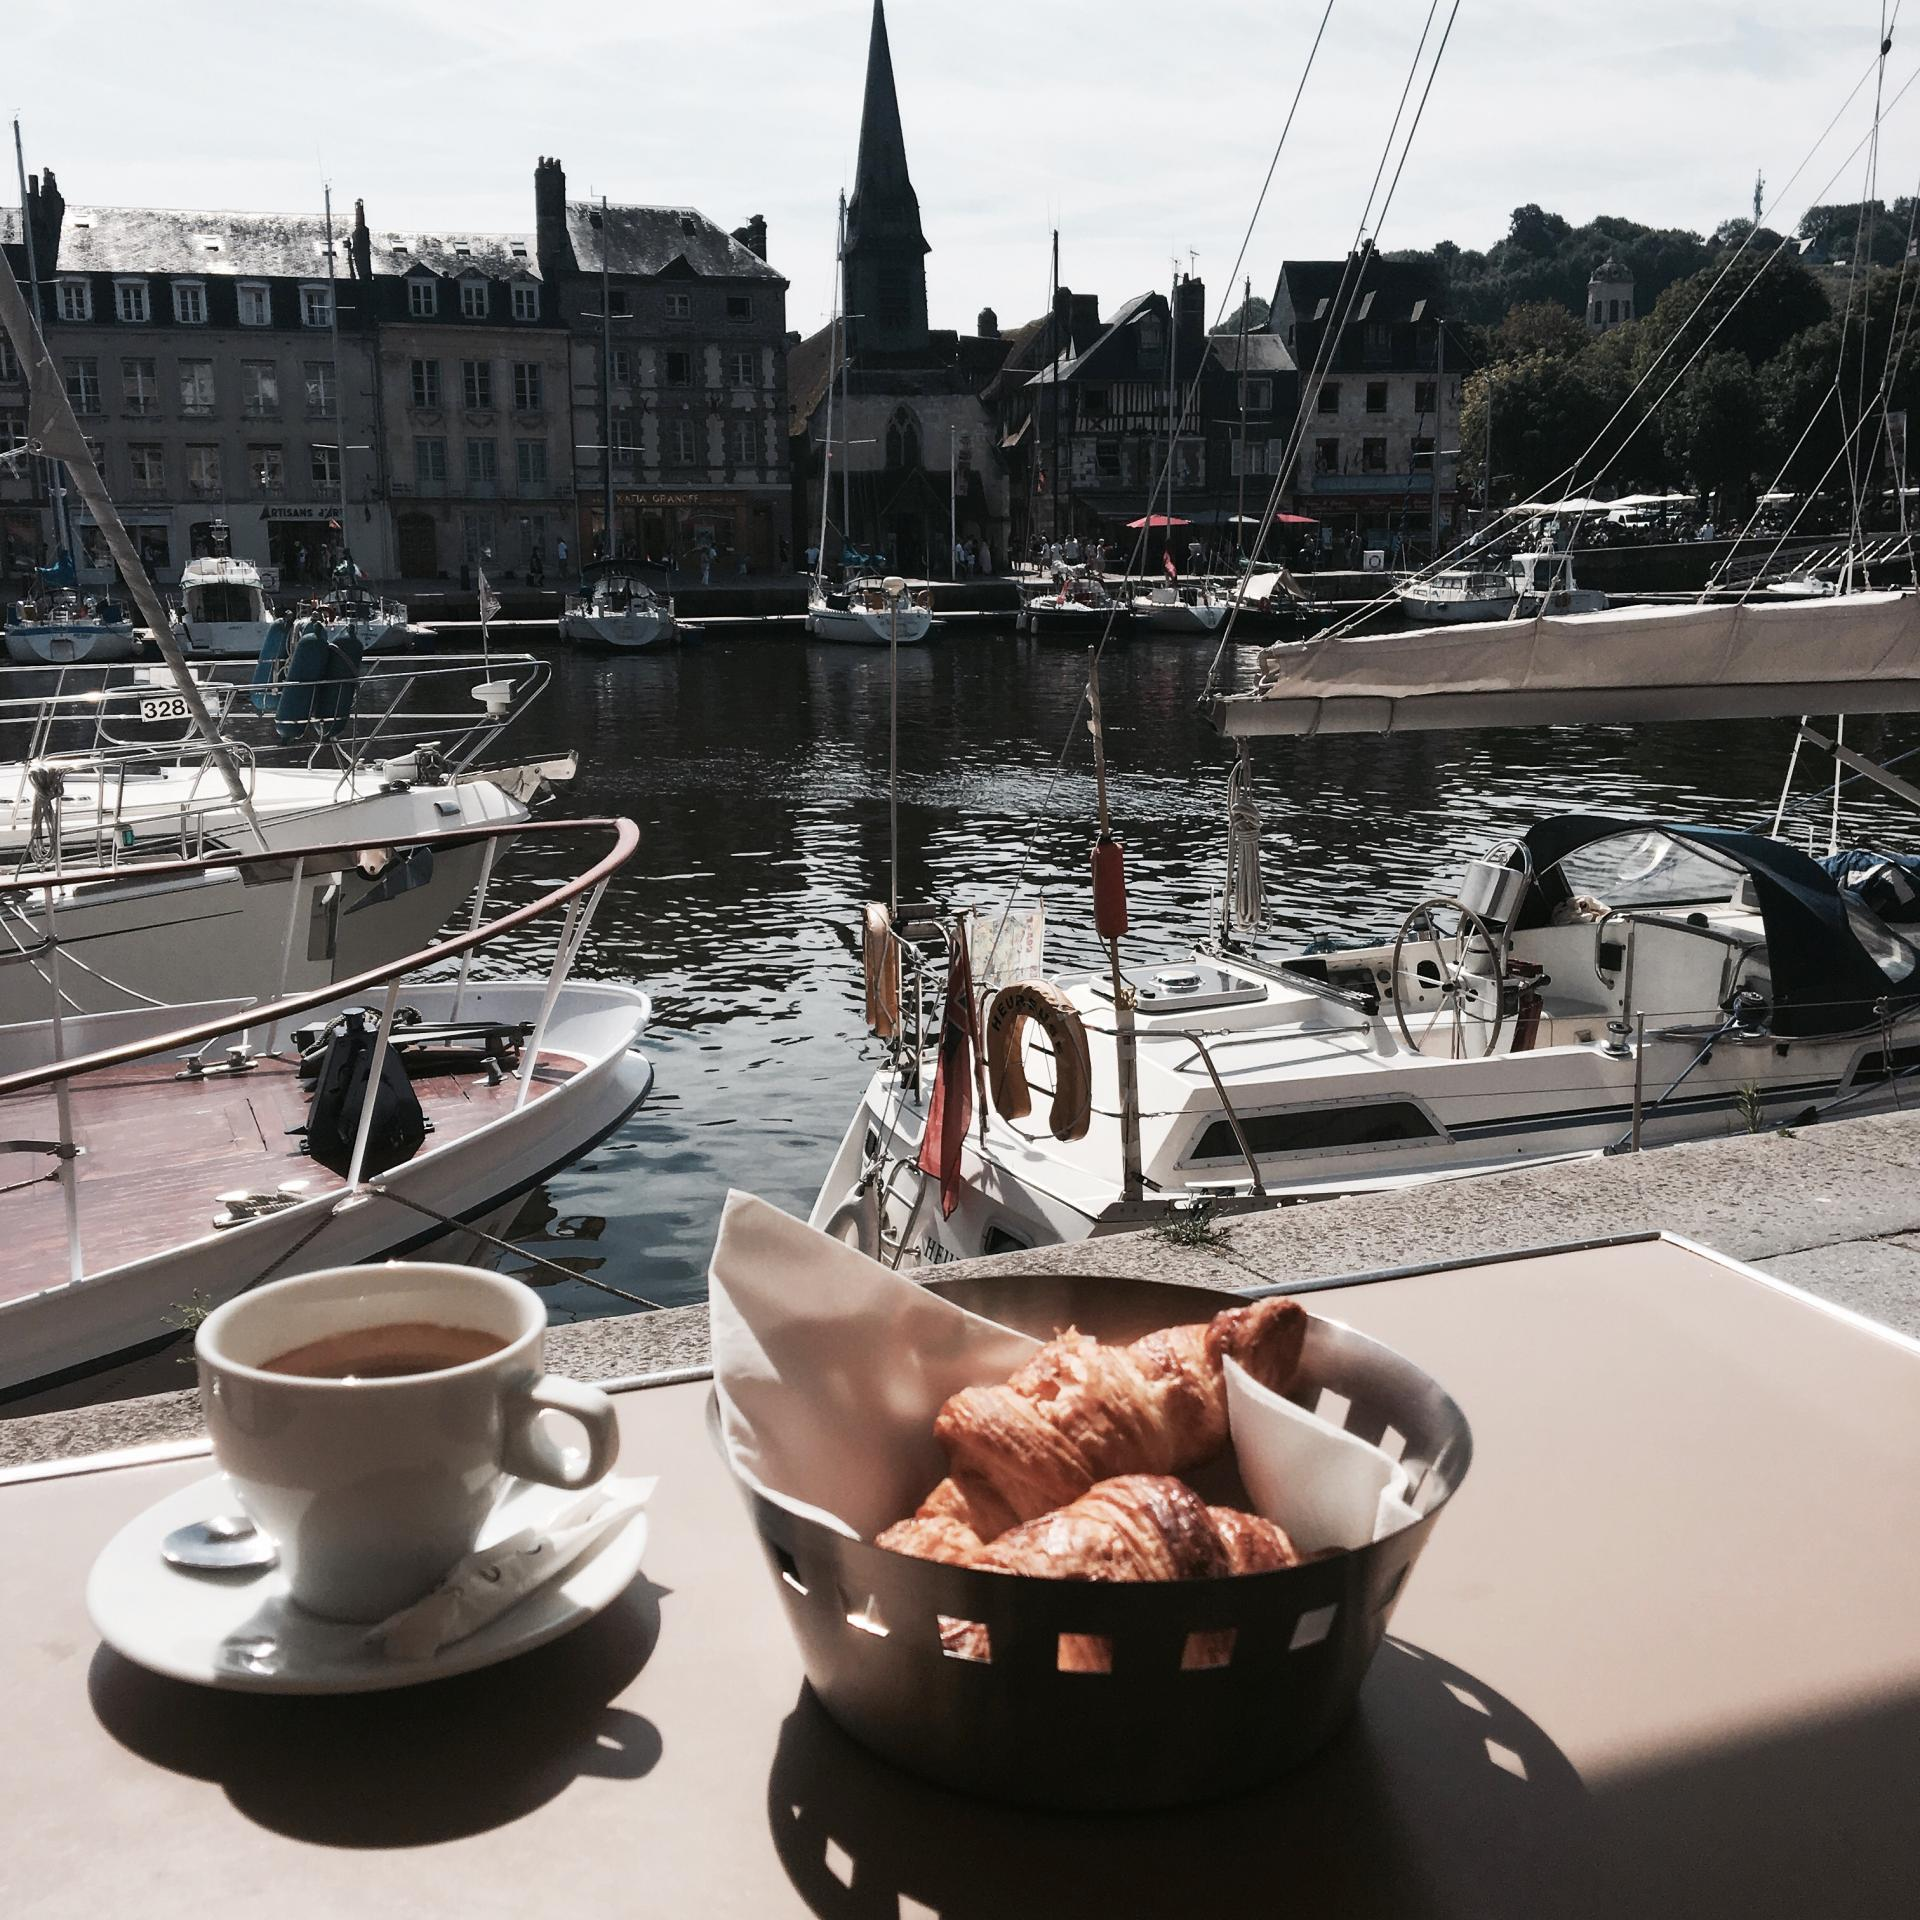 Sharefashion - Un week-end à Honfleur entre copines